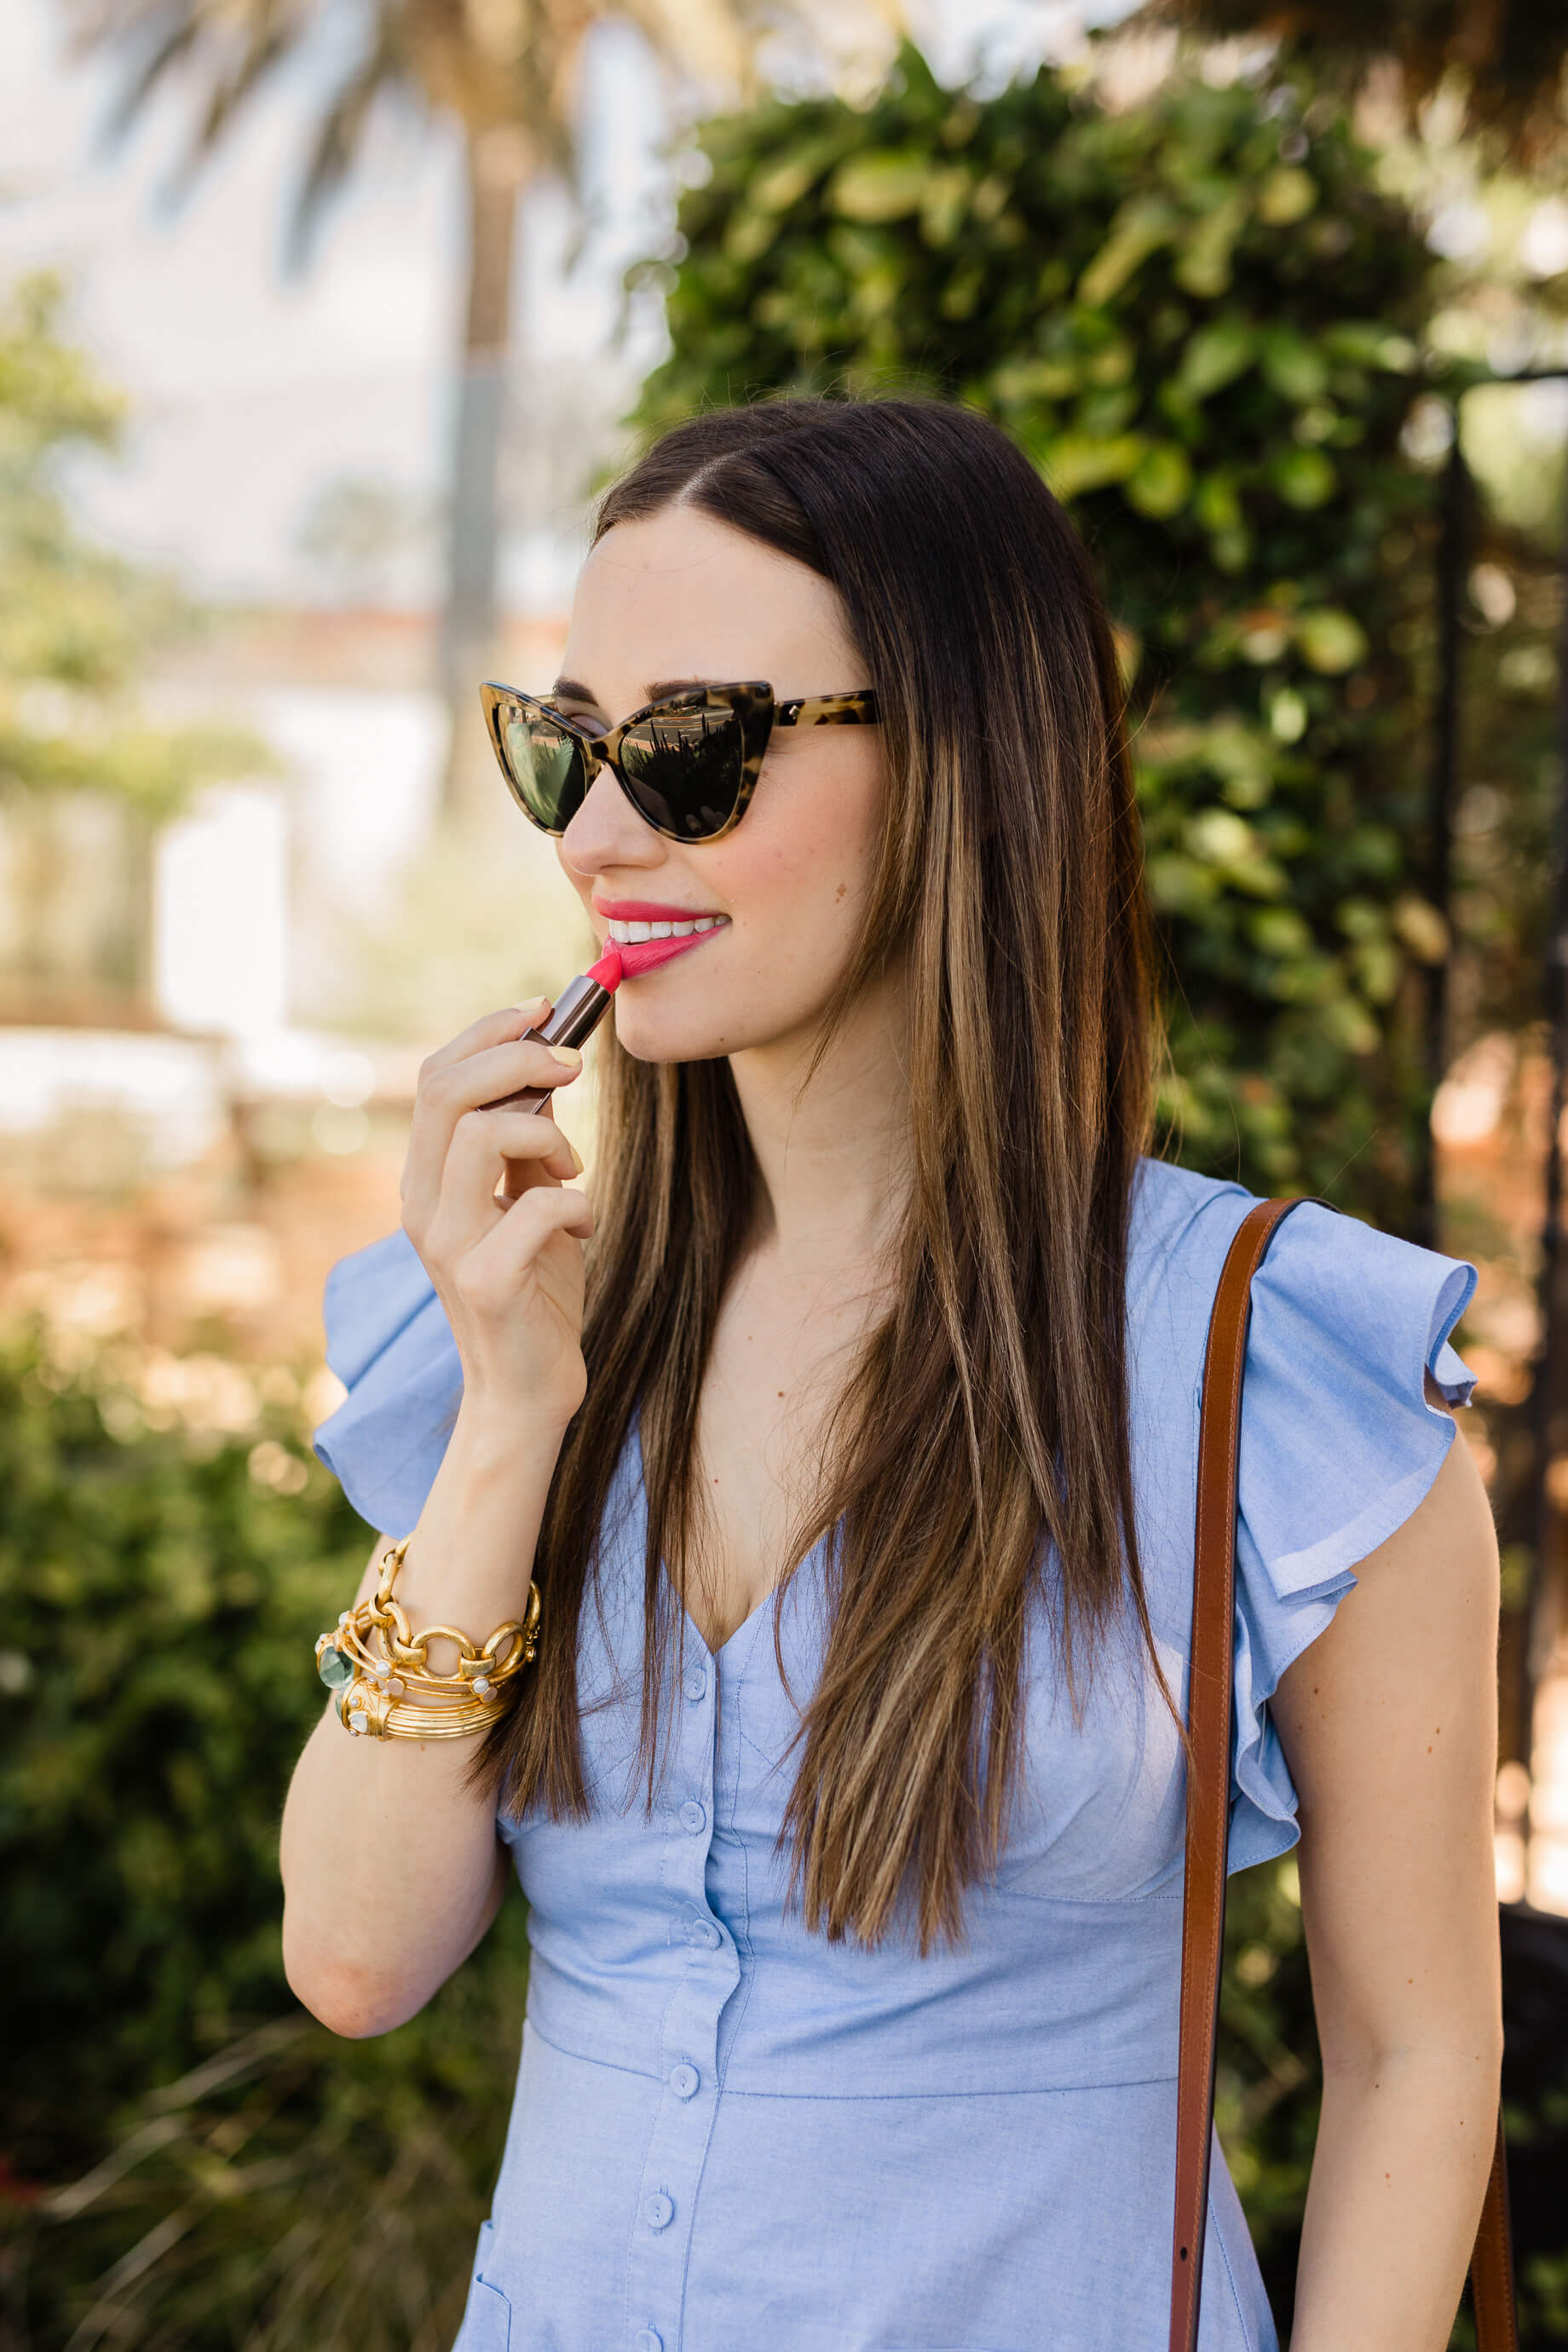 The Spring/Summer Lipstick Everyone Will Be Talking About - M Loves M @marmar